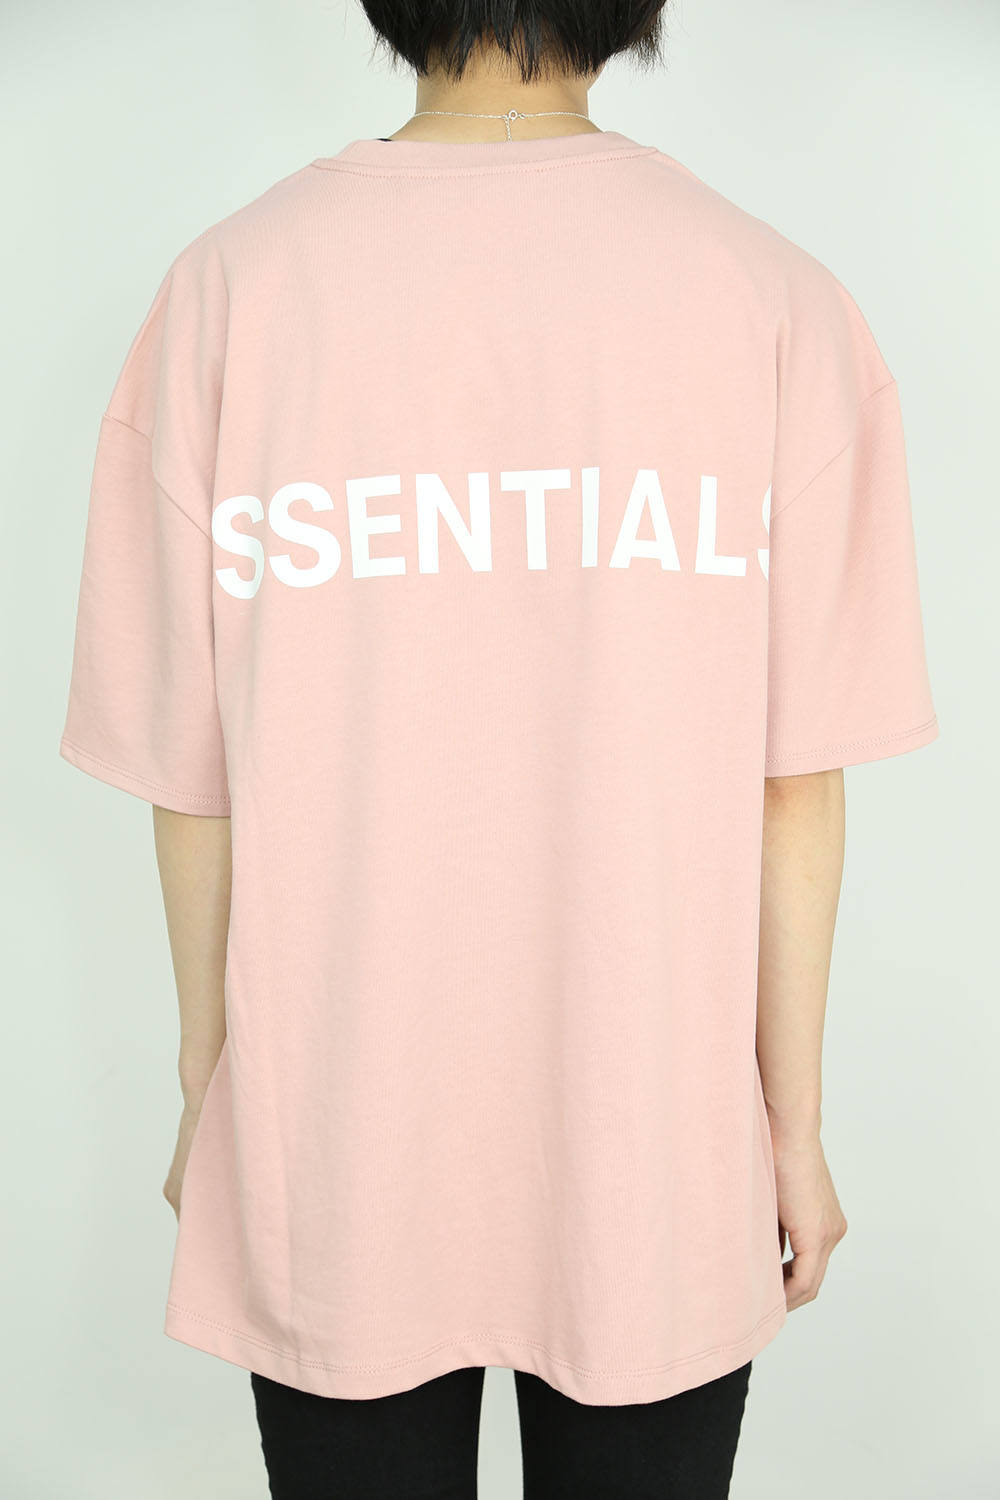 REFLECTOR LOGO S/S TEE / ピンク